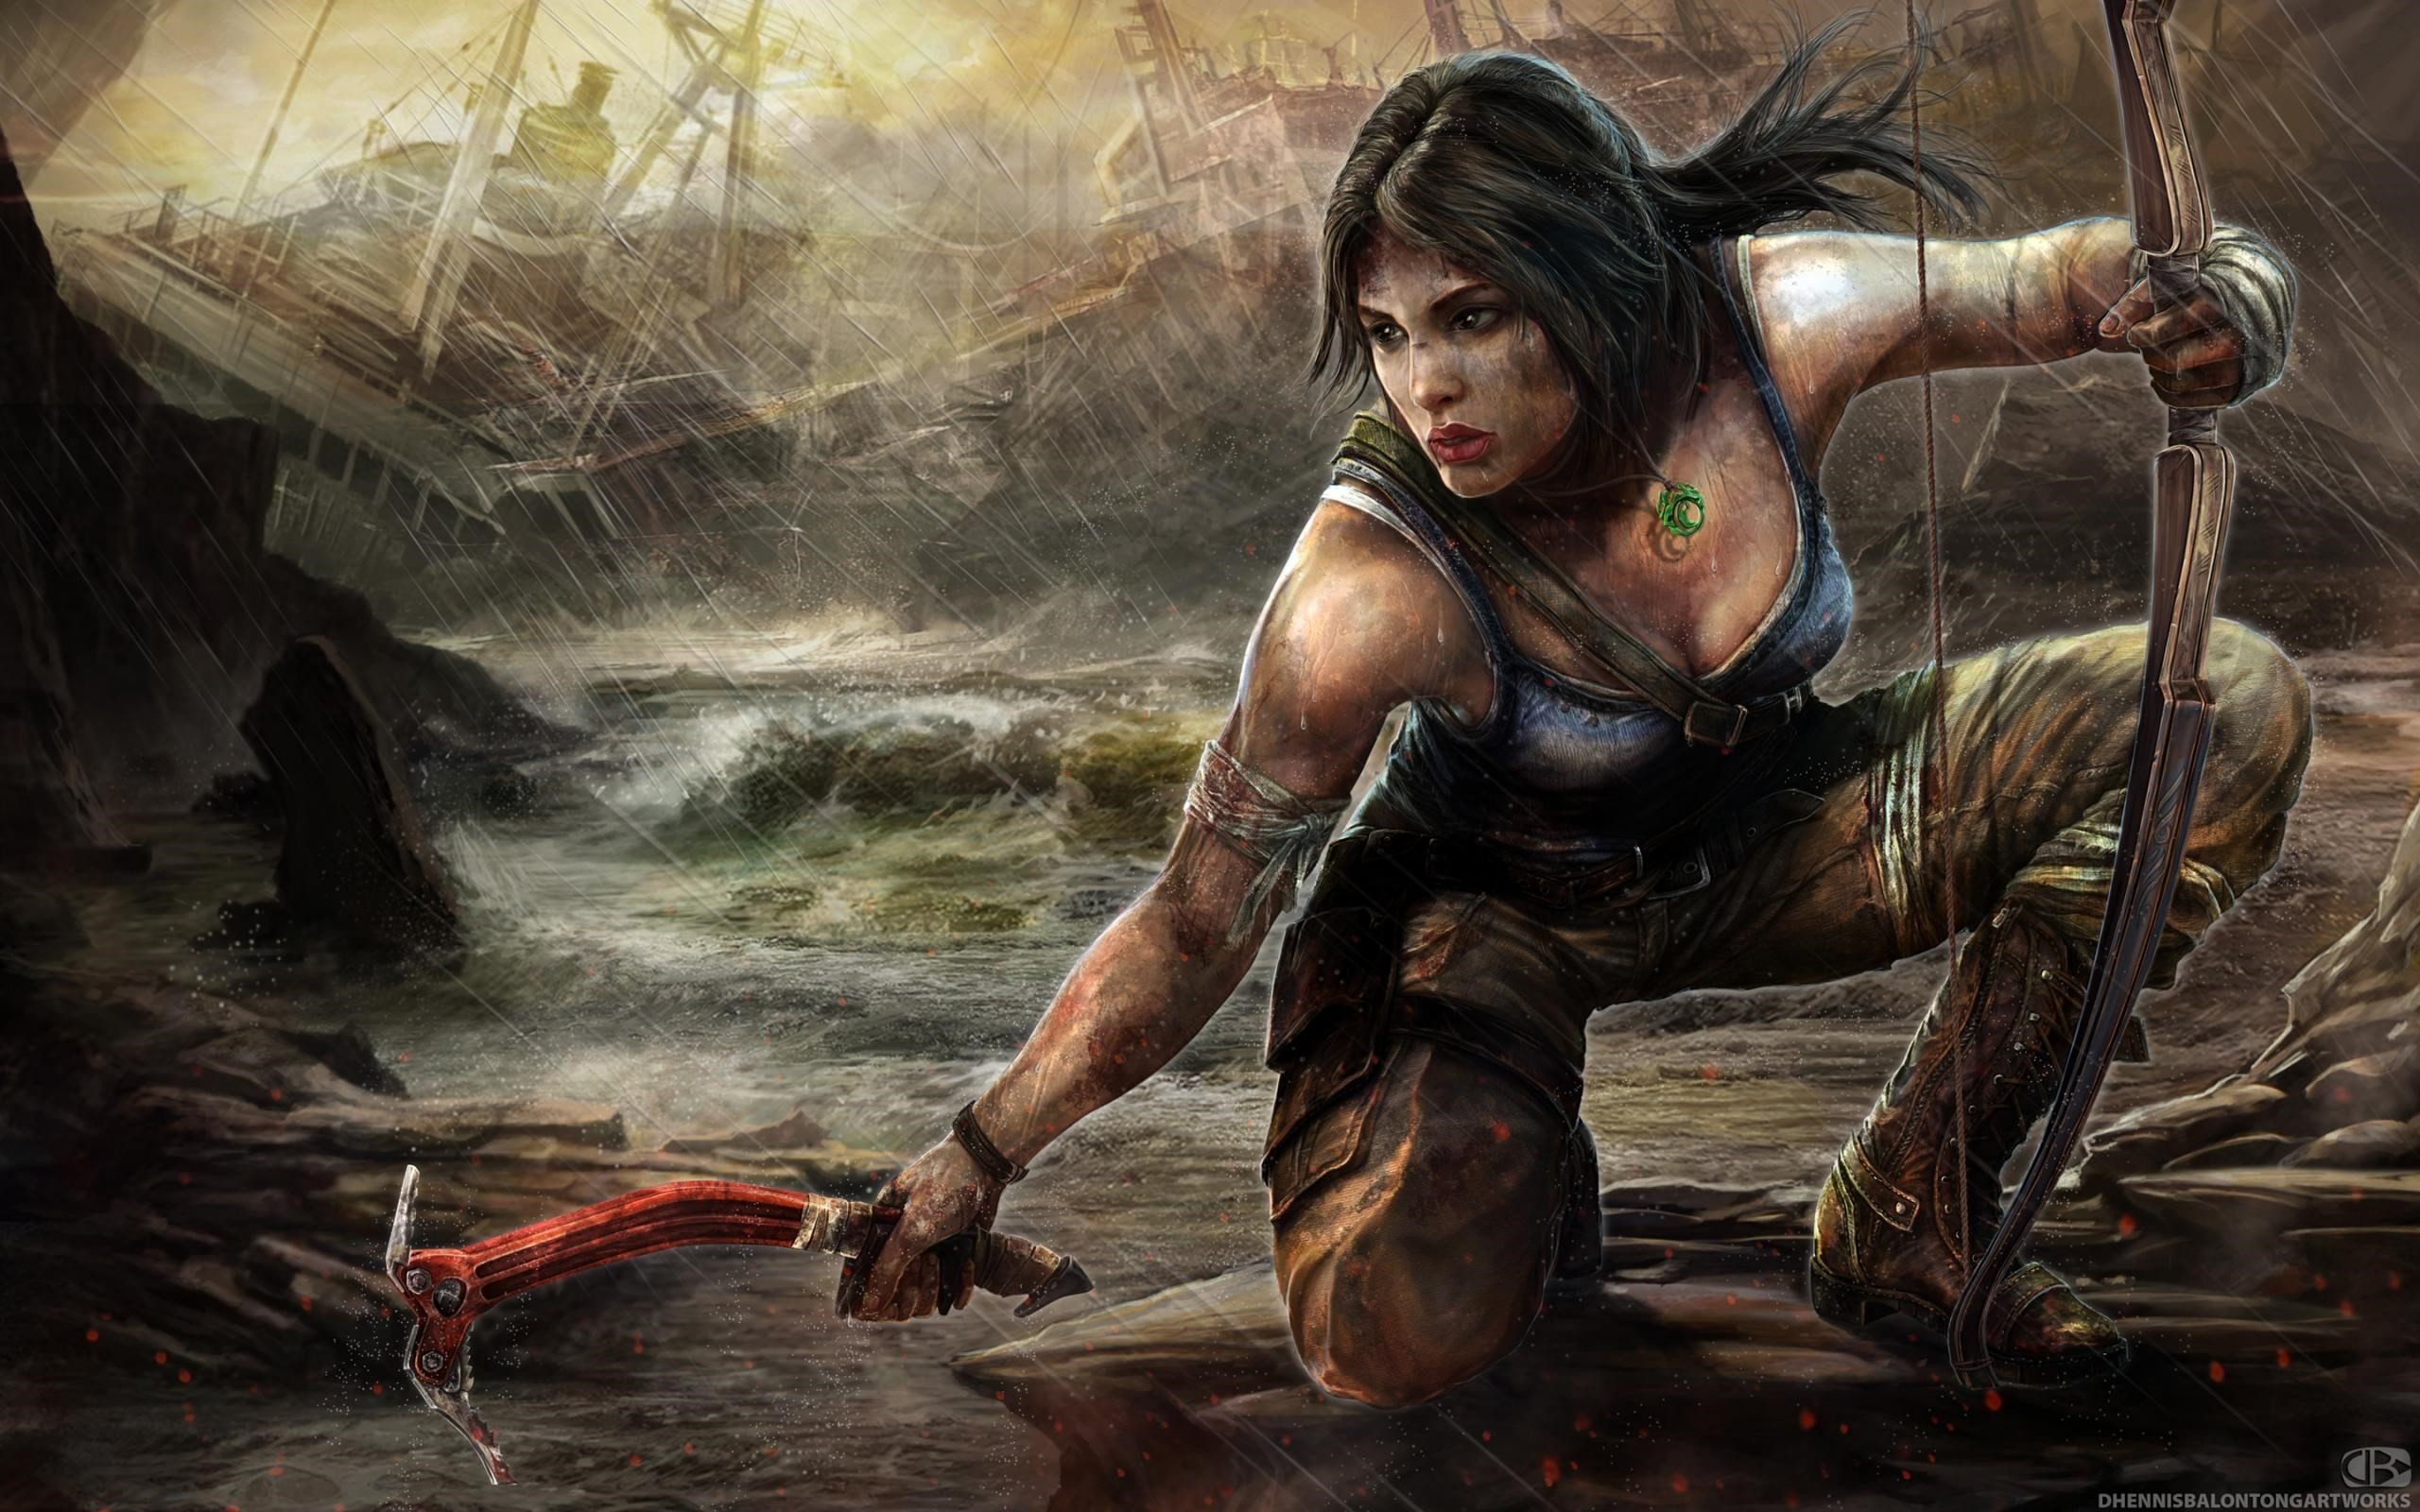 Tomb Raider 2013 Warriors Archers Rain Lara Croft Games Girls Wallpaper 2560x1600 103484 Wallpaperup